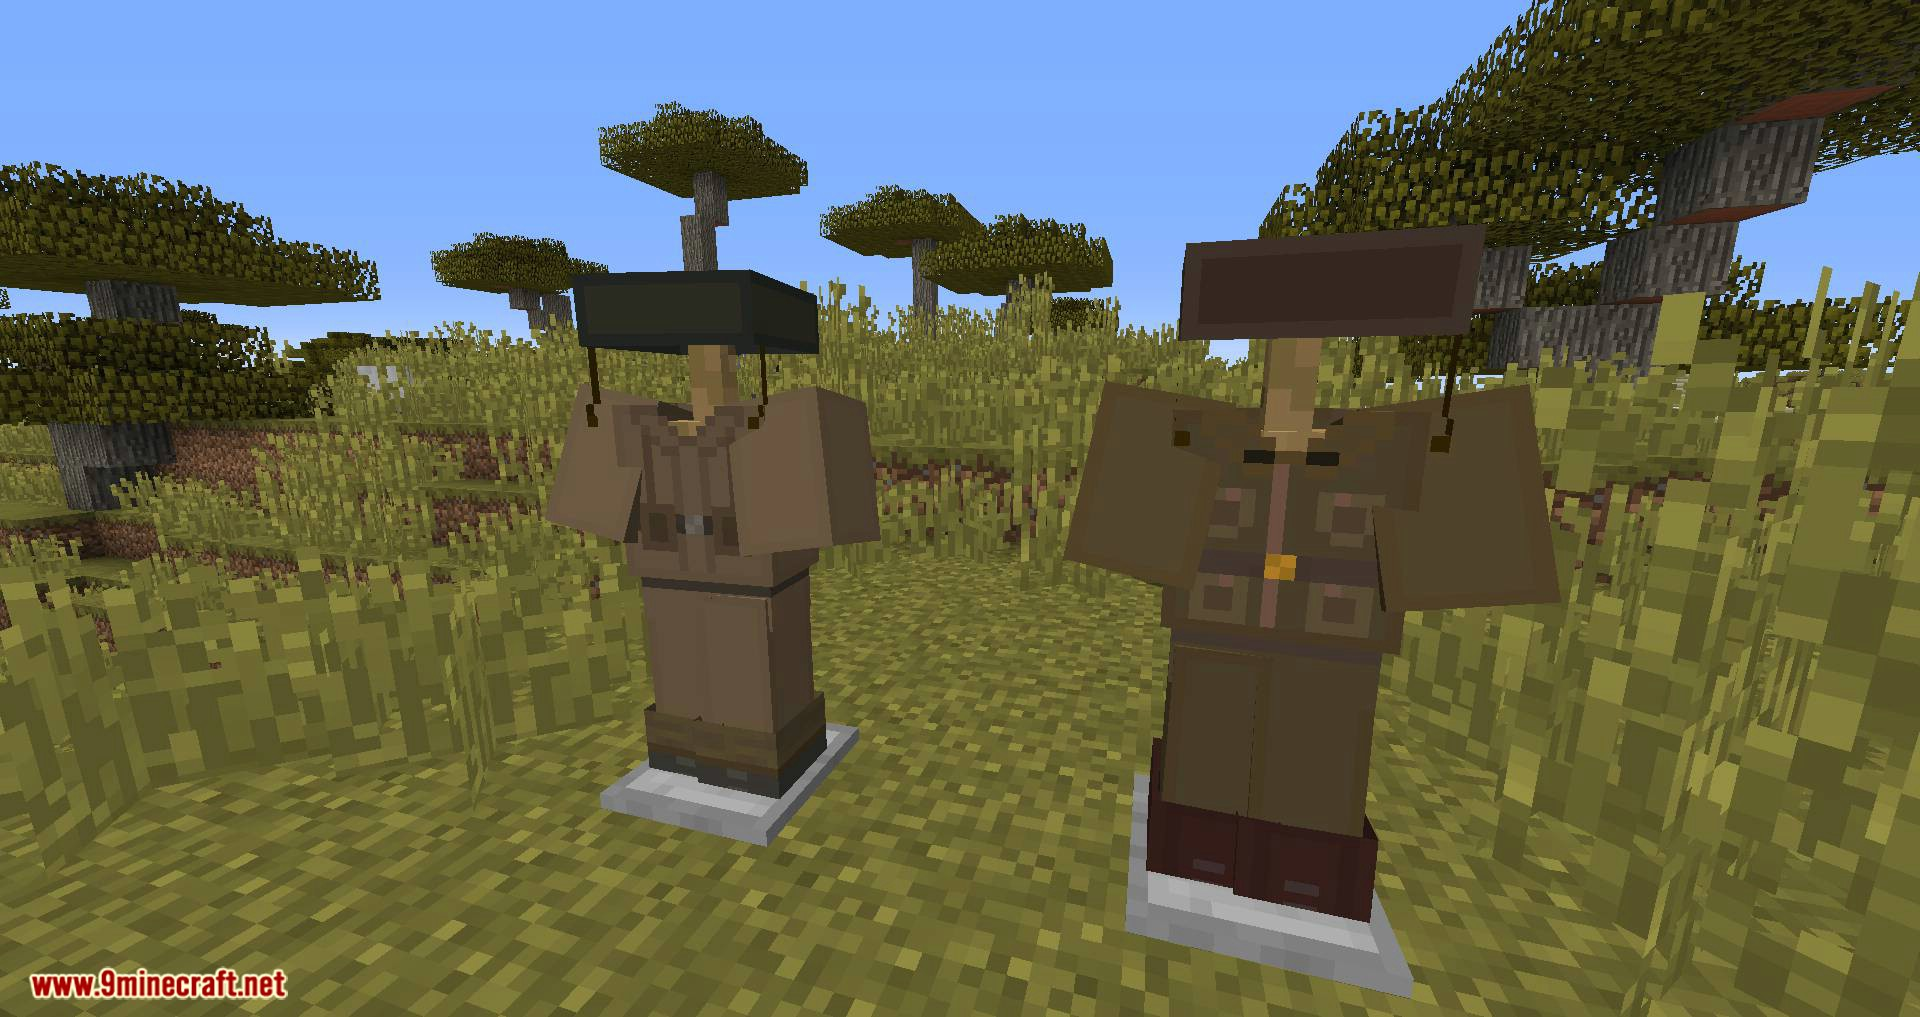 Flan_s Content Pack WW2 Armors mod for minecraft 08